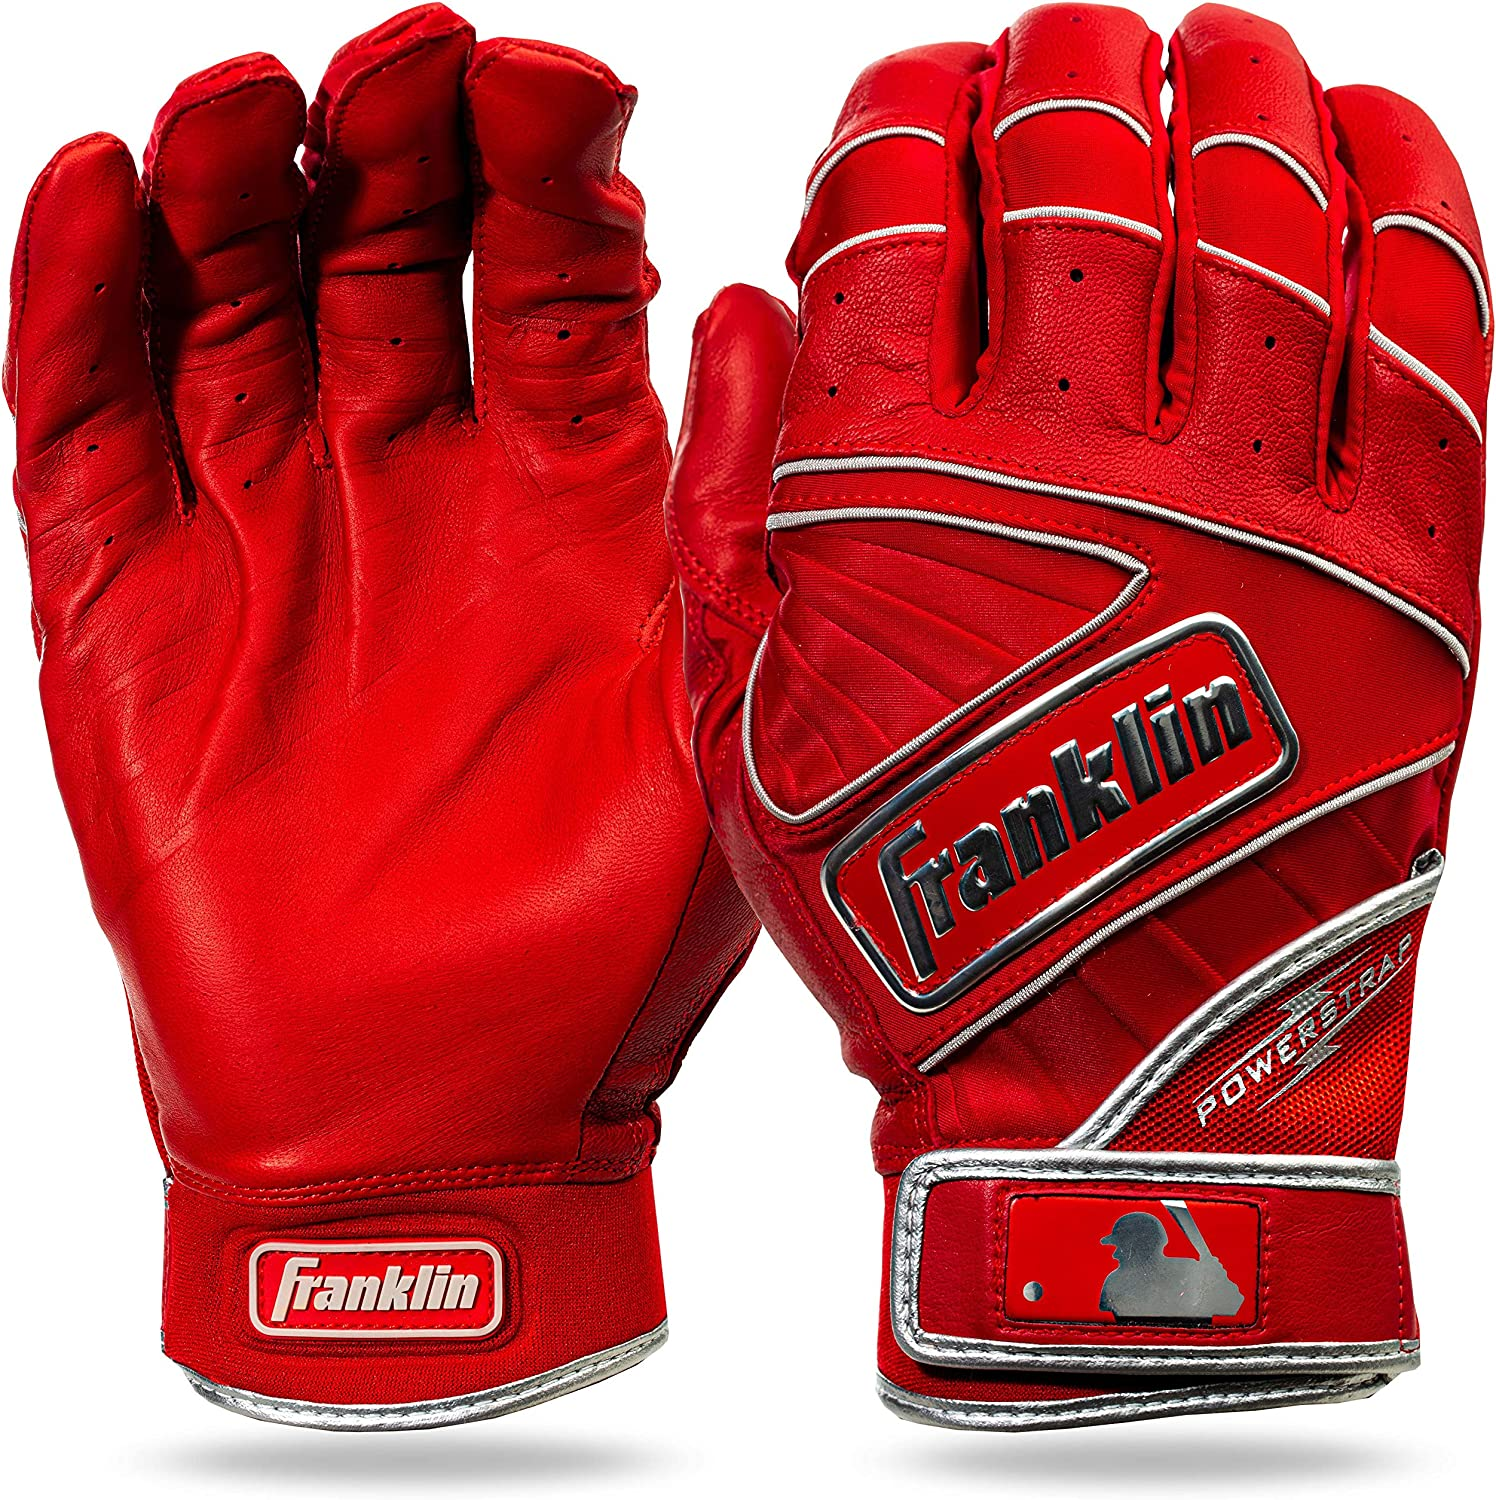 Shipping included Franklin Sports Powerstrap Gloves Batting Super sale